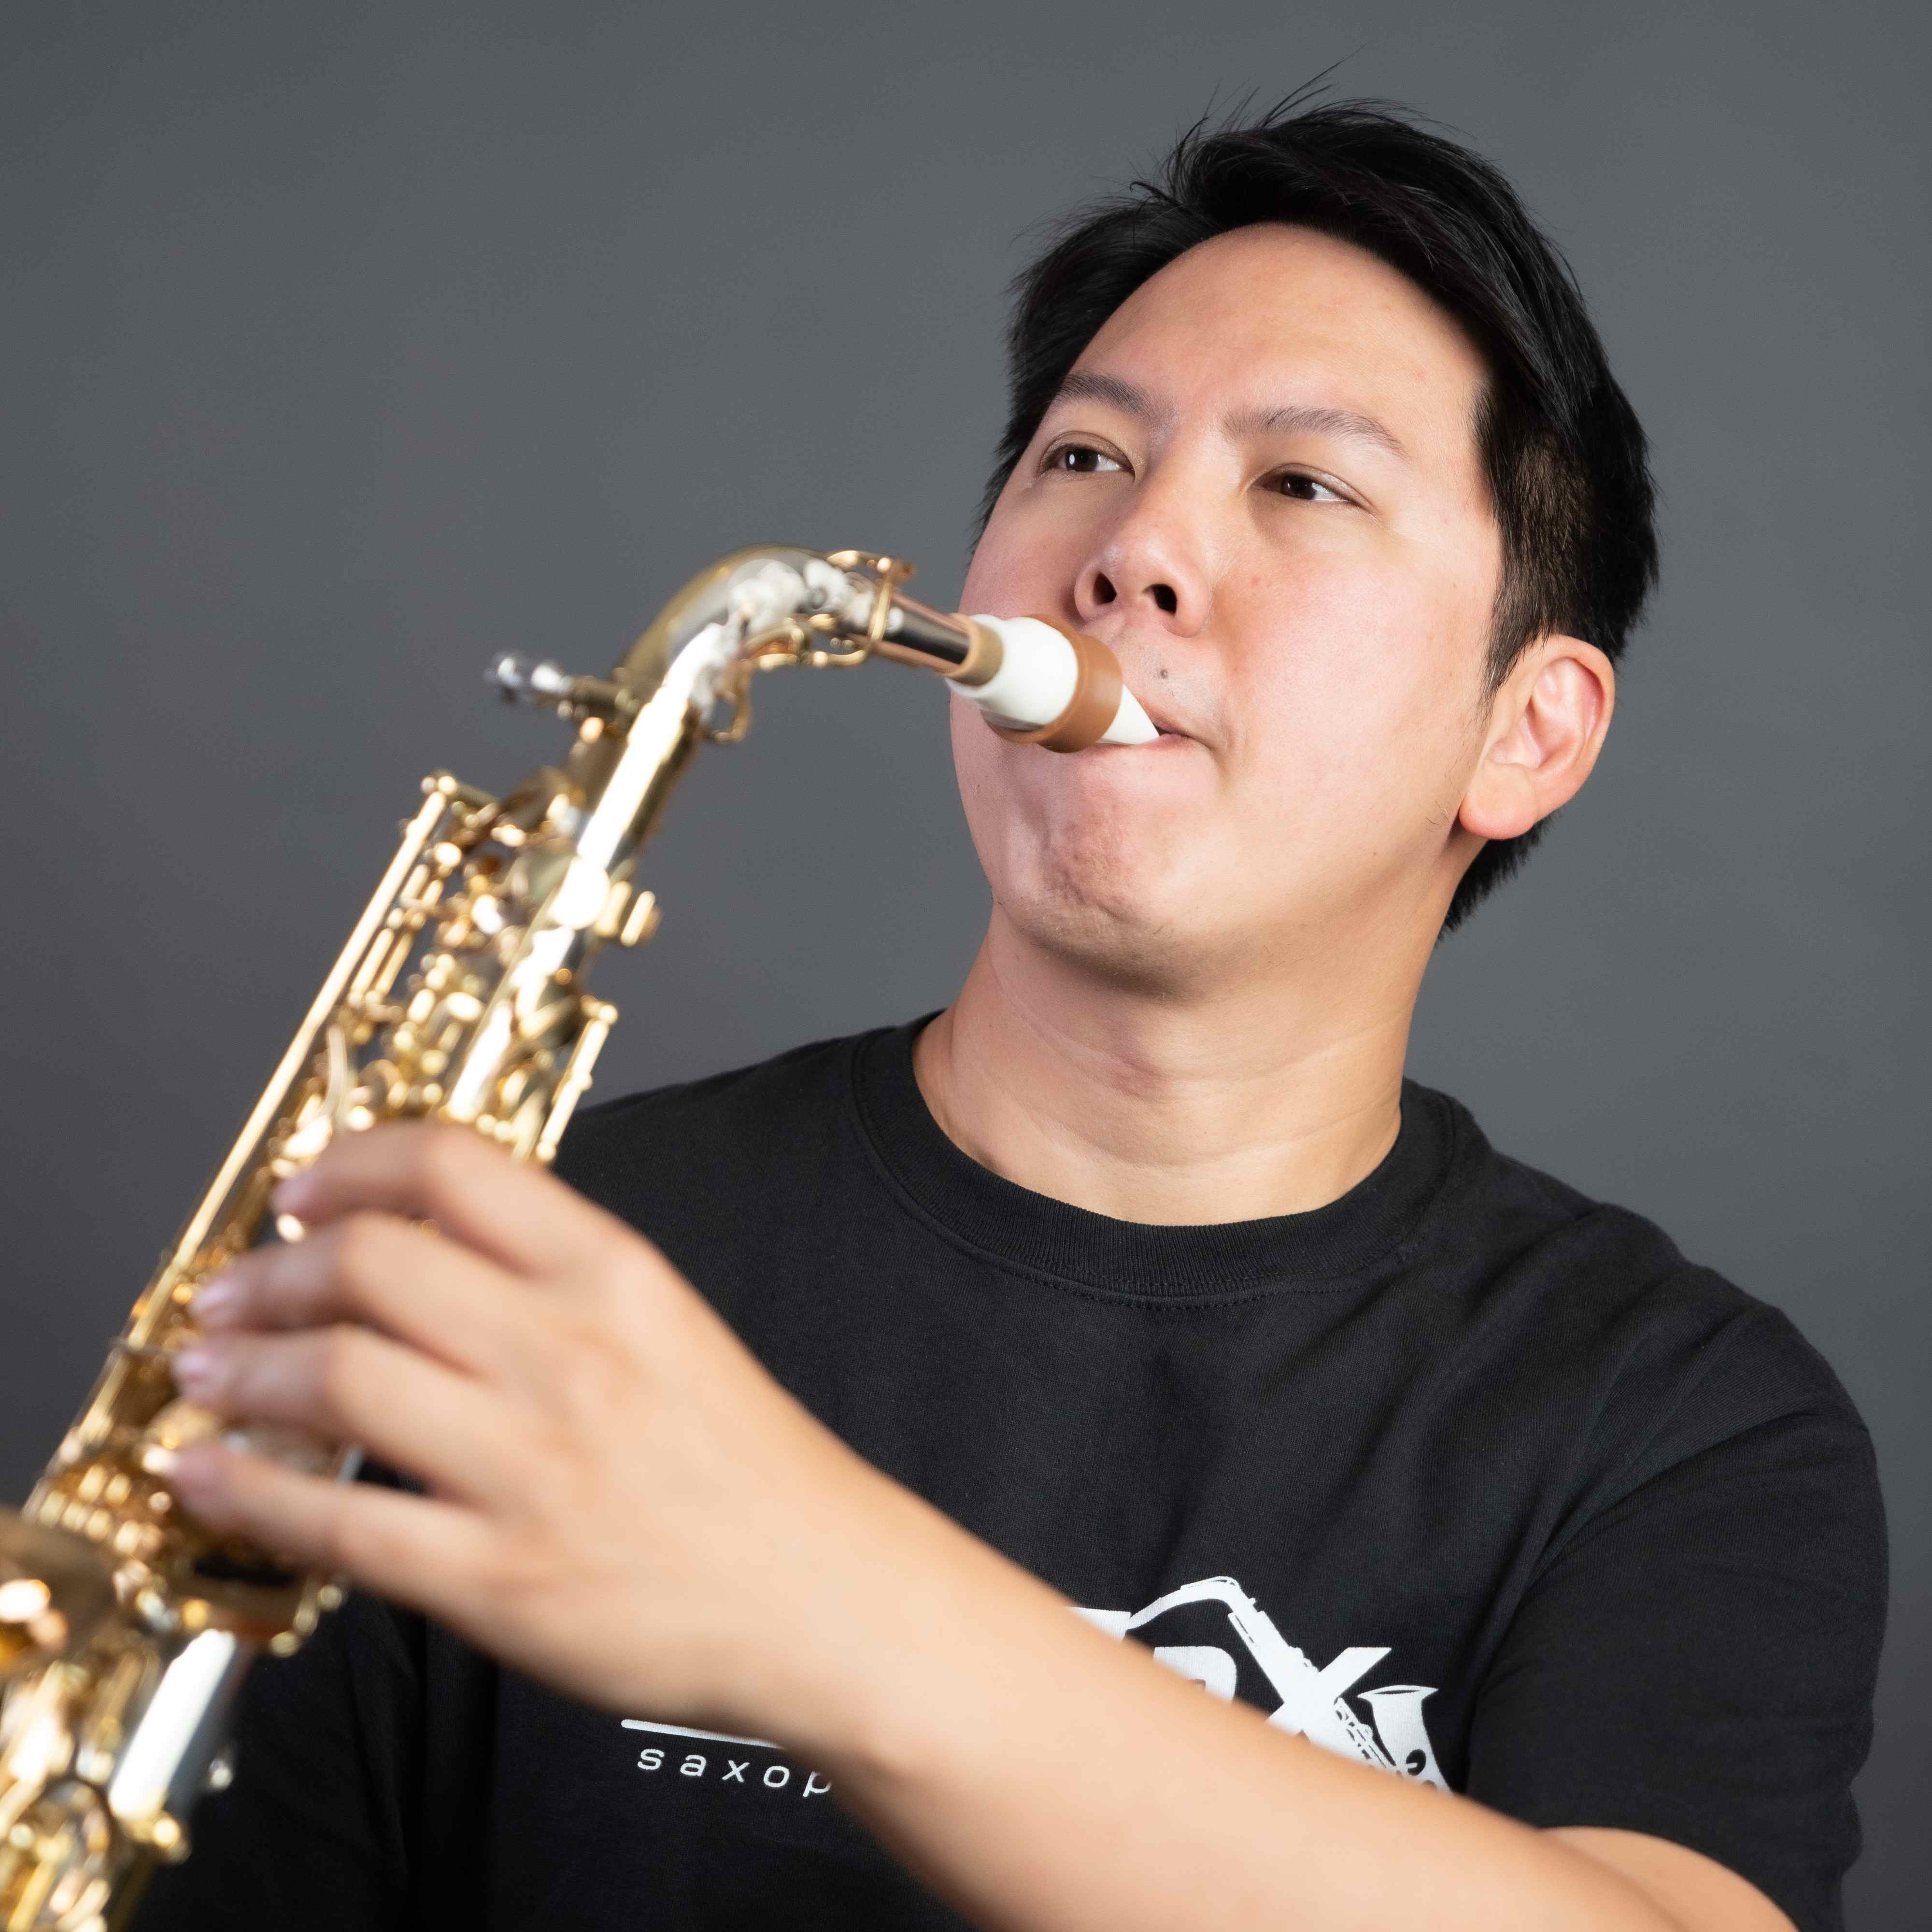 William Chien plays a Syos mouthpiece for alto saxophone